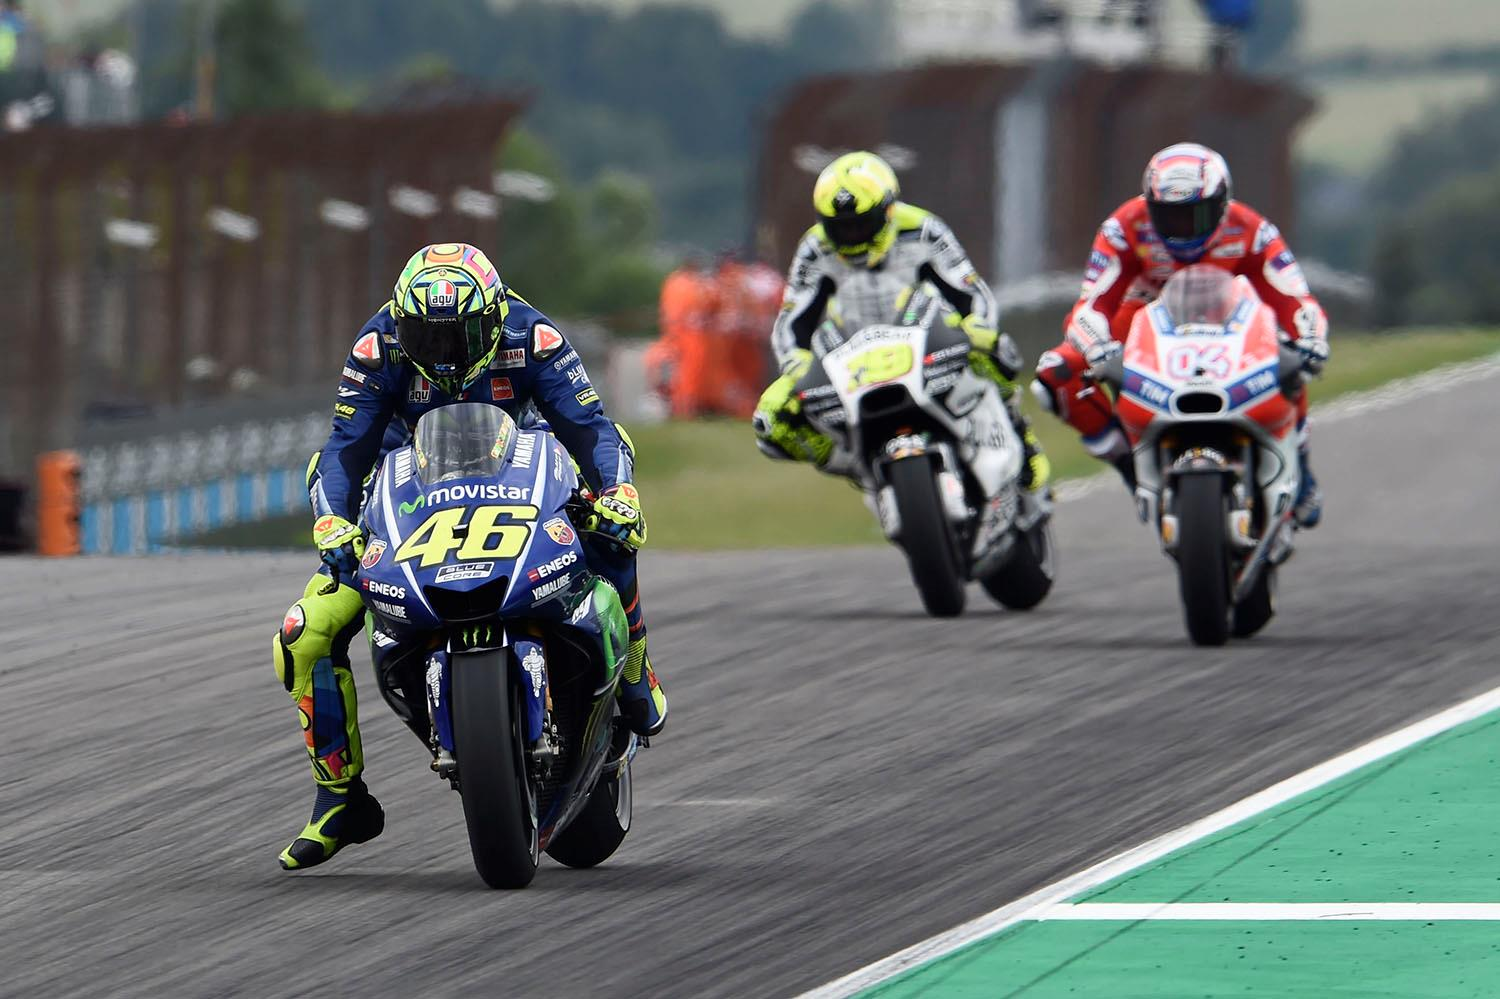 MotoGP Brno: Today I wanted to take a risk